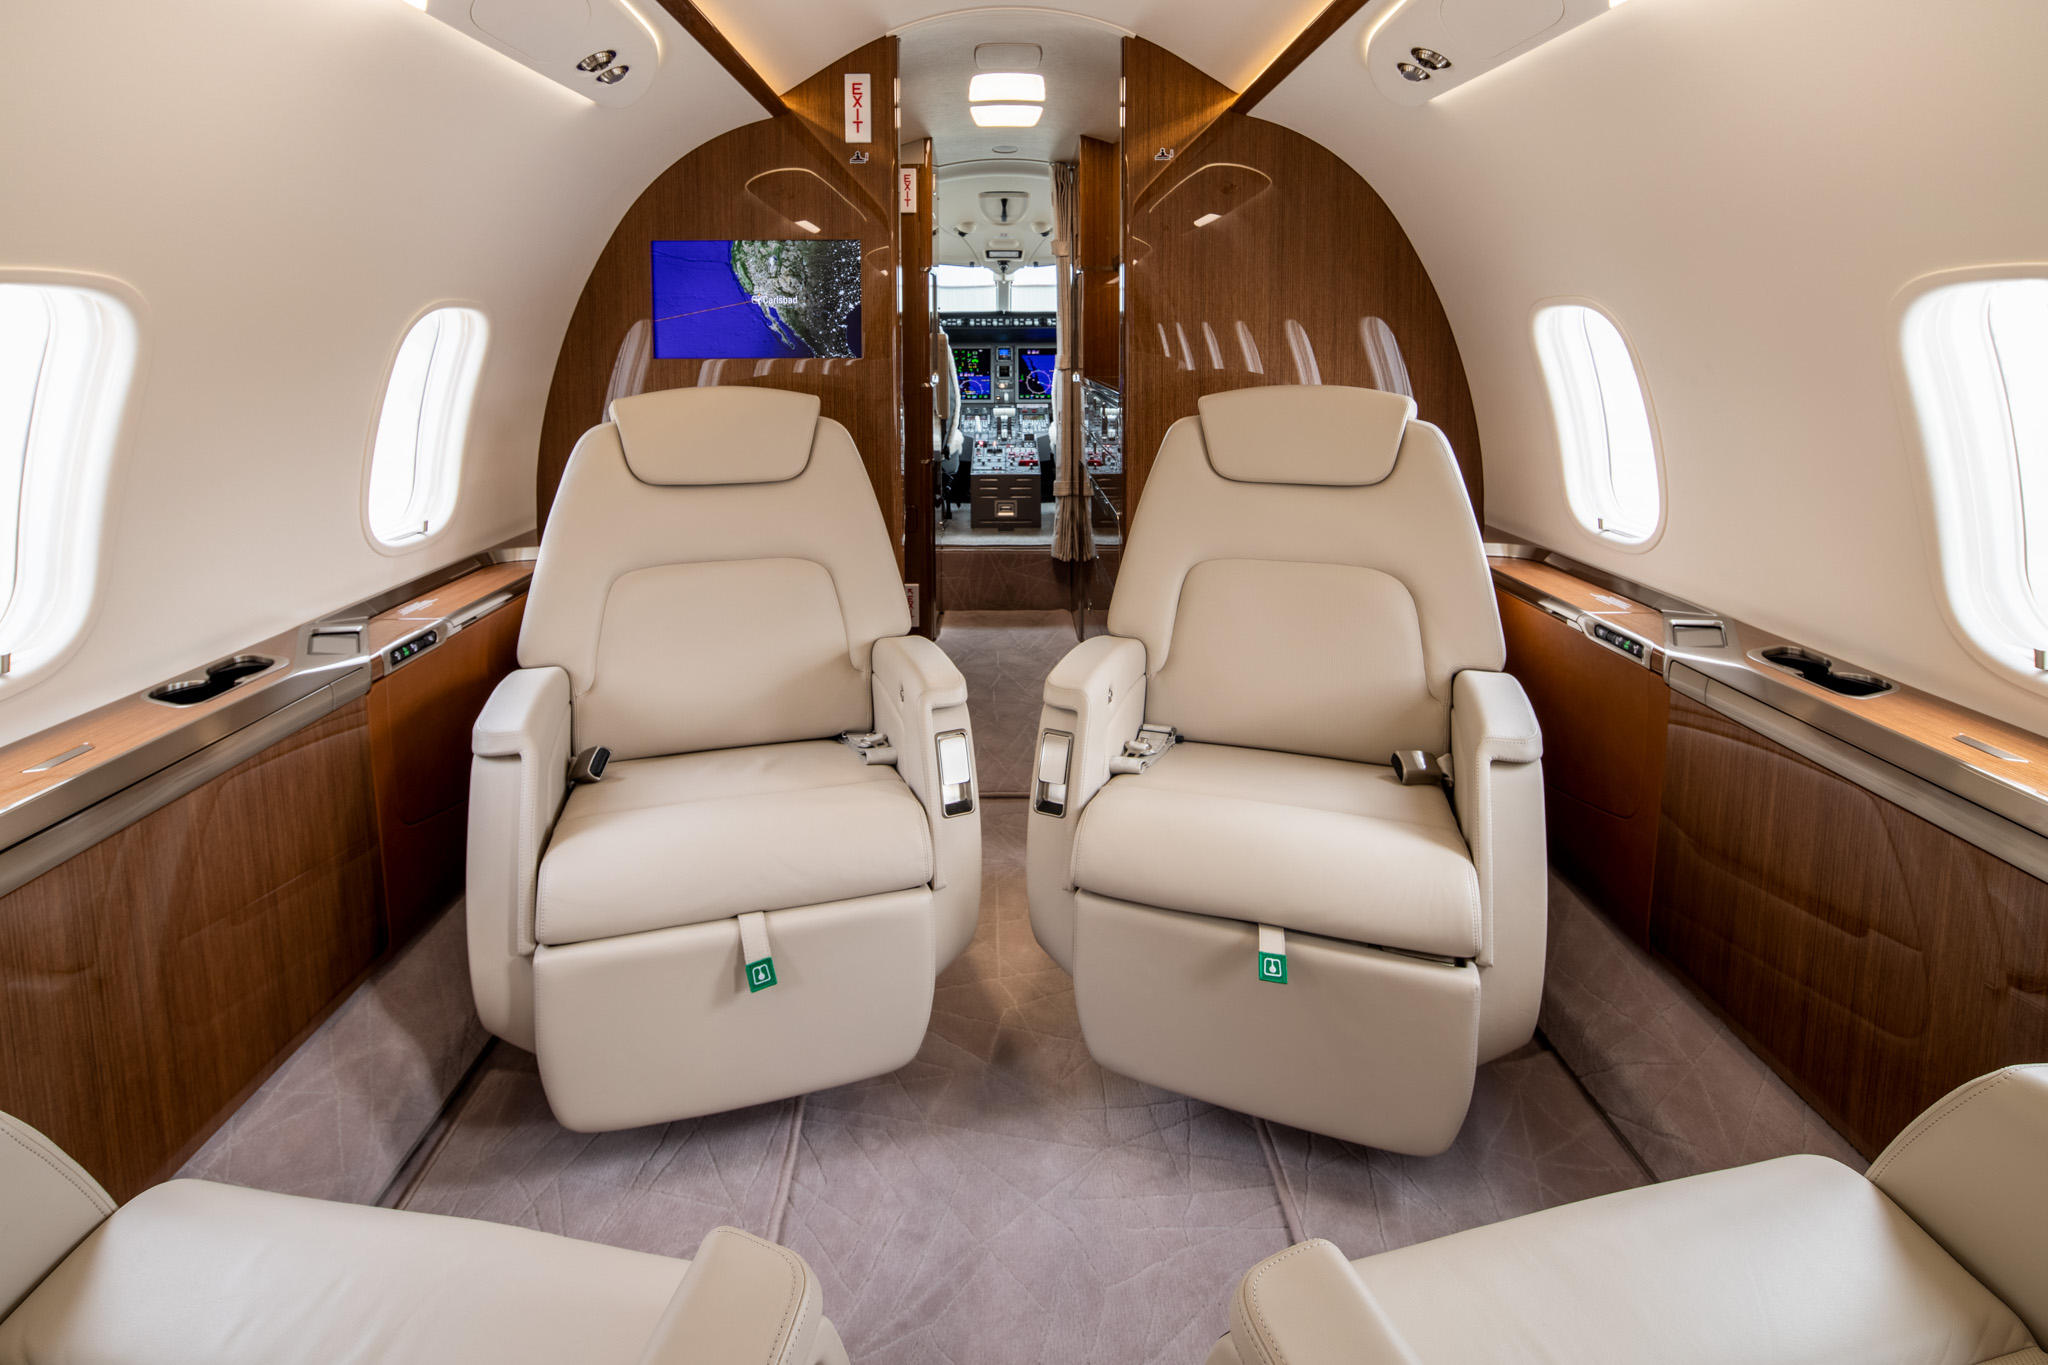 San Diego Jet Charter Challenger Seating